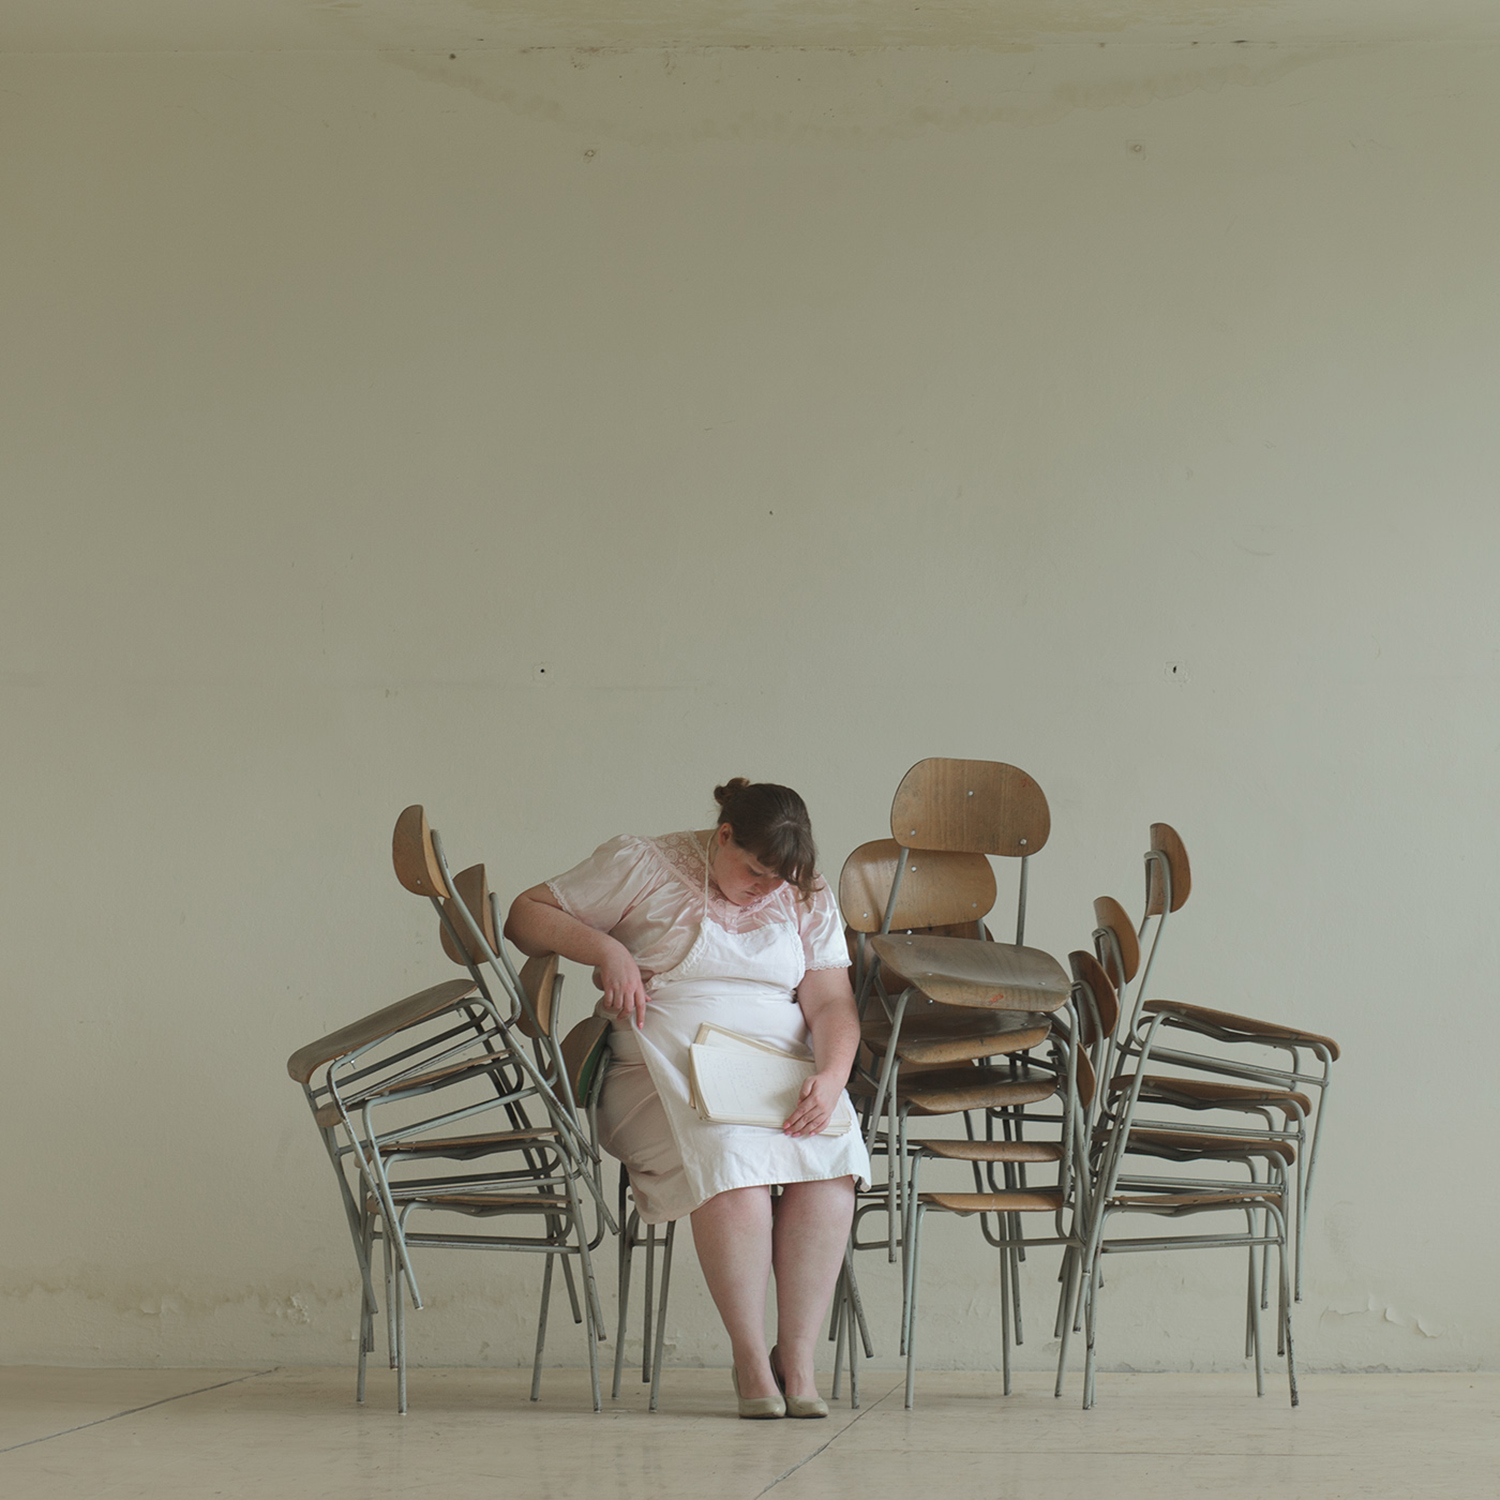 Evelyn Bencicova, School of Life - woman on stacked chairs